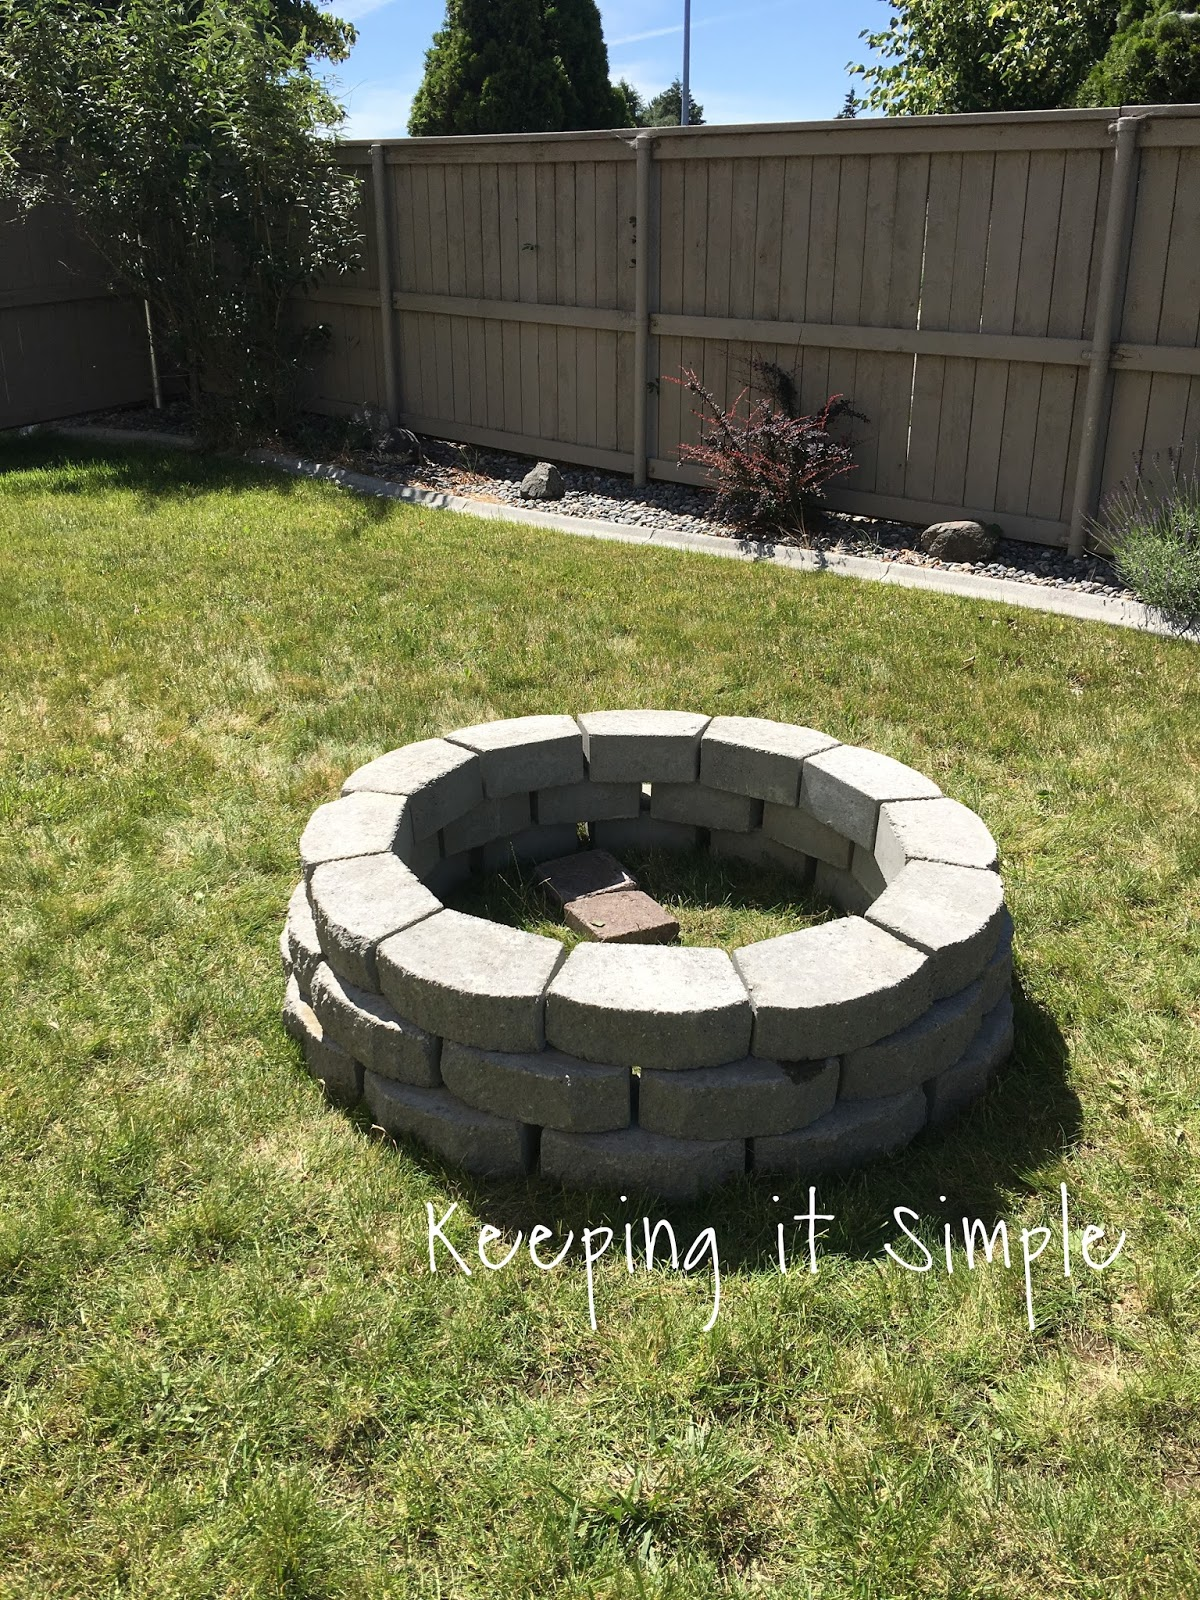 How to Build a DIY Fire Pit for Only 60 Keeping it Simple